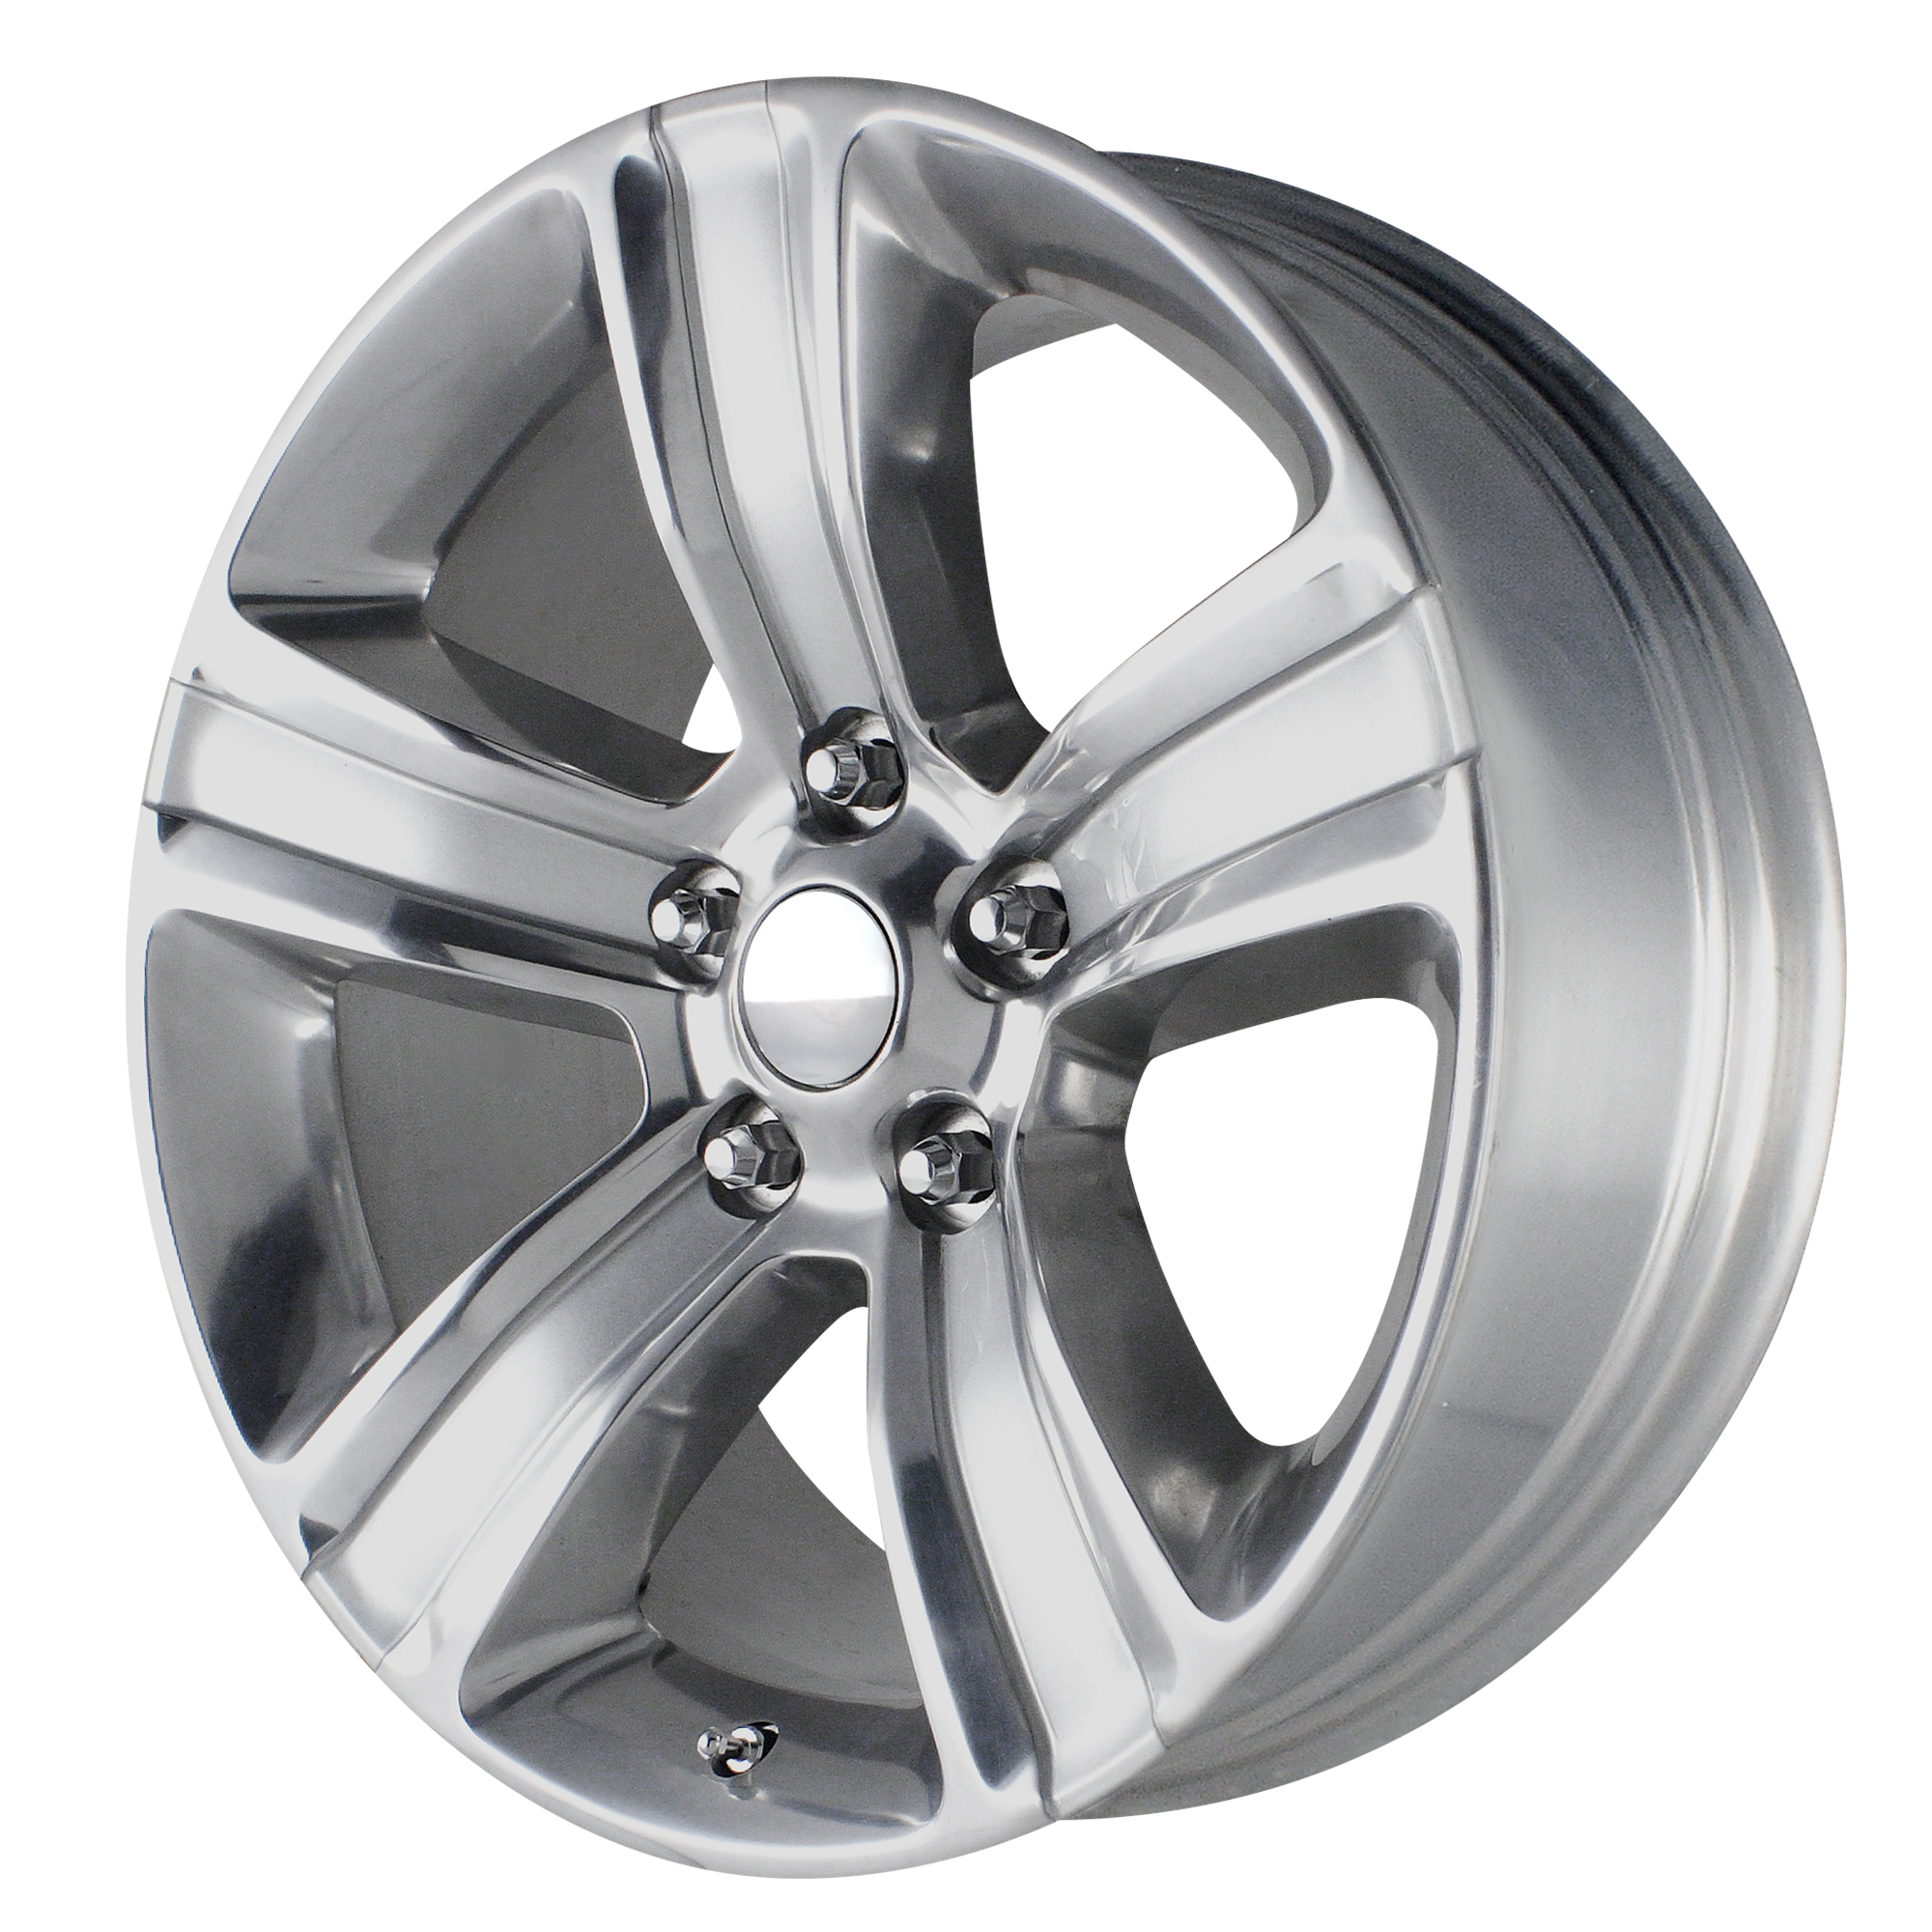 OE Creations Replica Wheels OE Creations PR155 Silver w/ Polished Accents